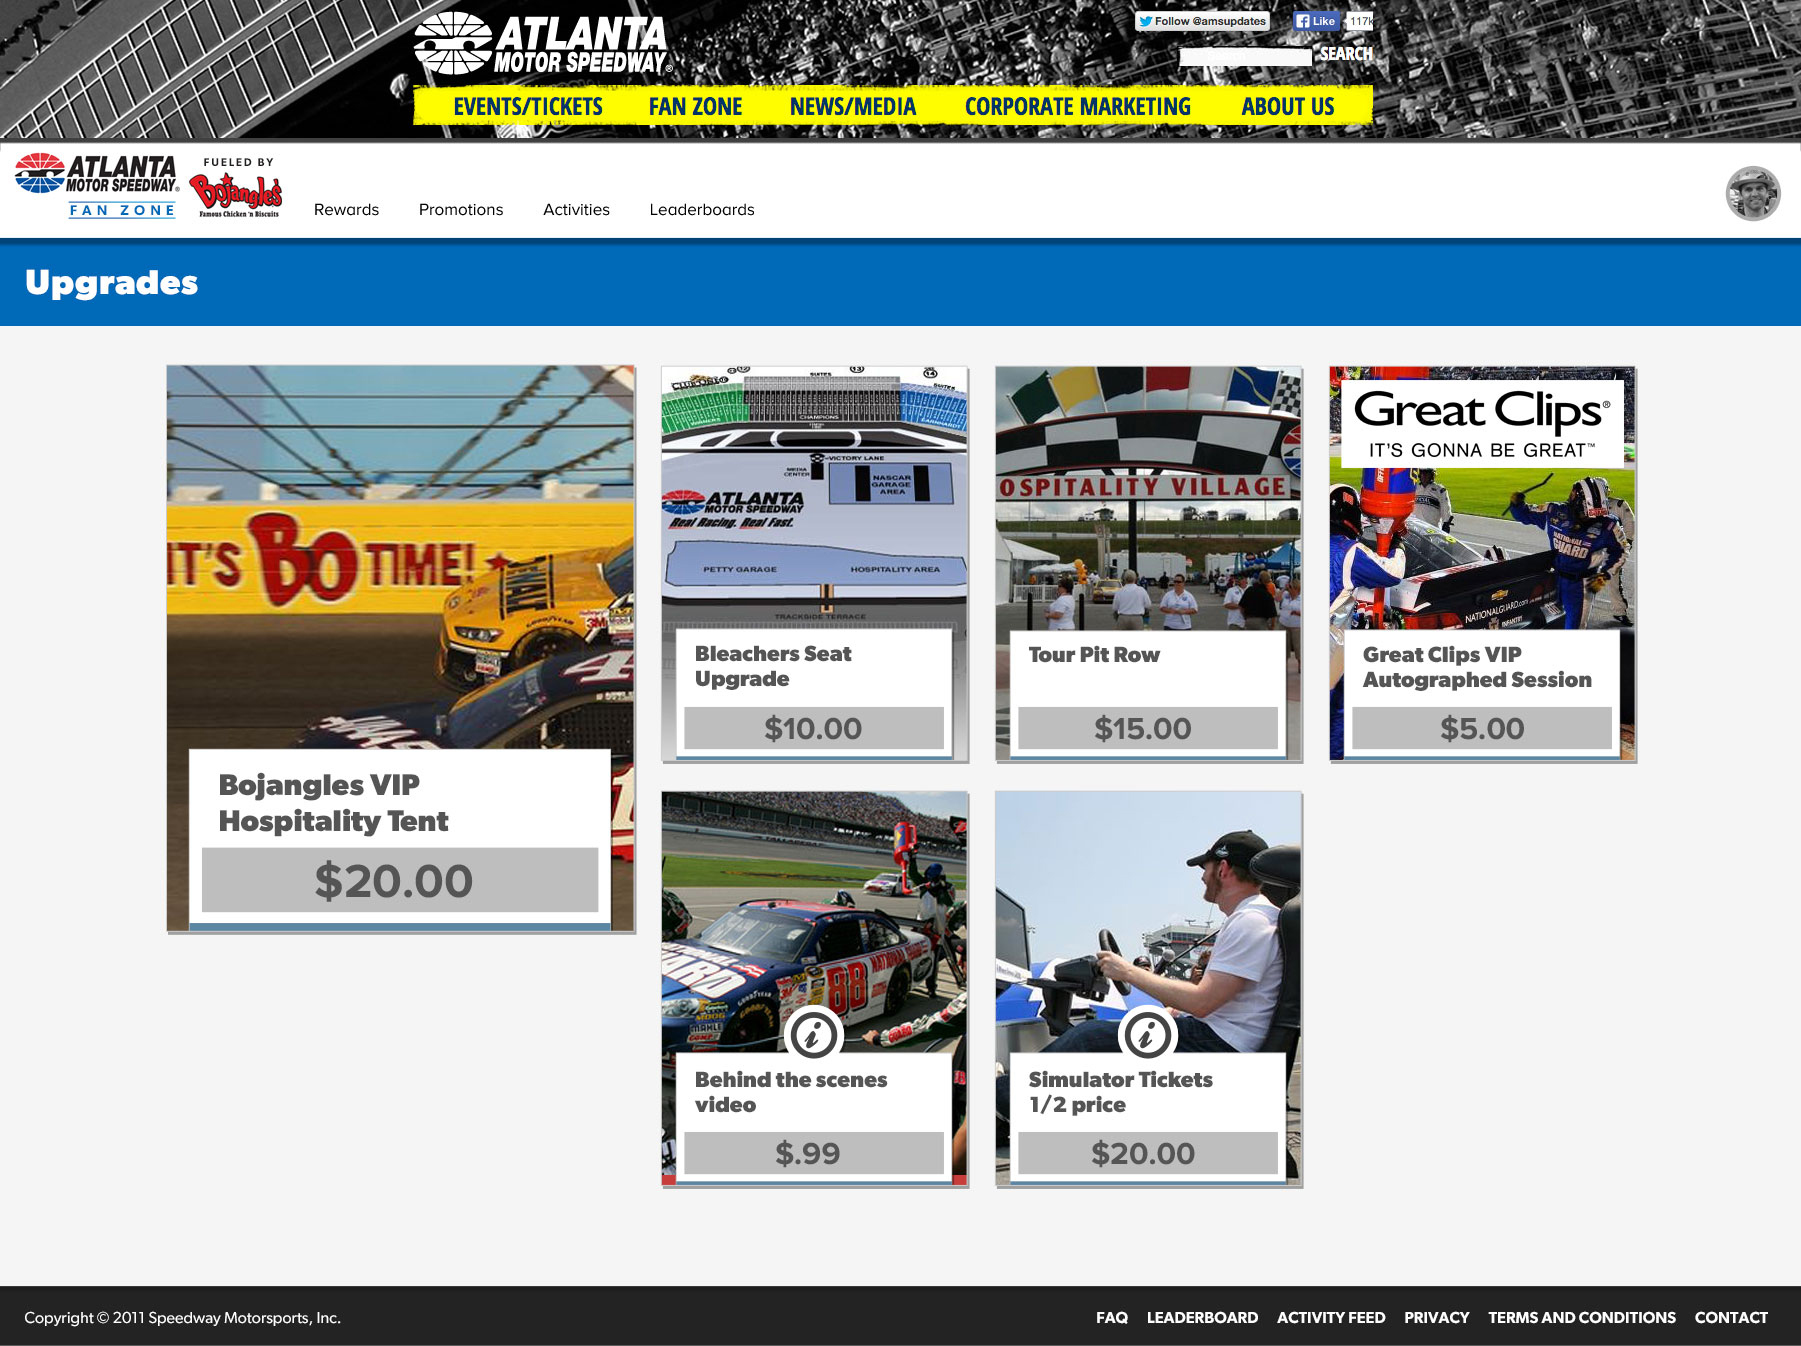 ATL_Speedway_Engage_2a-4